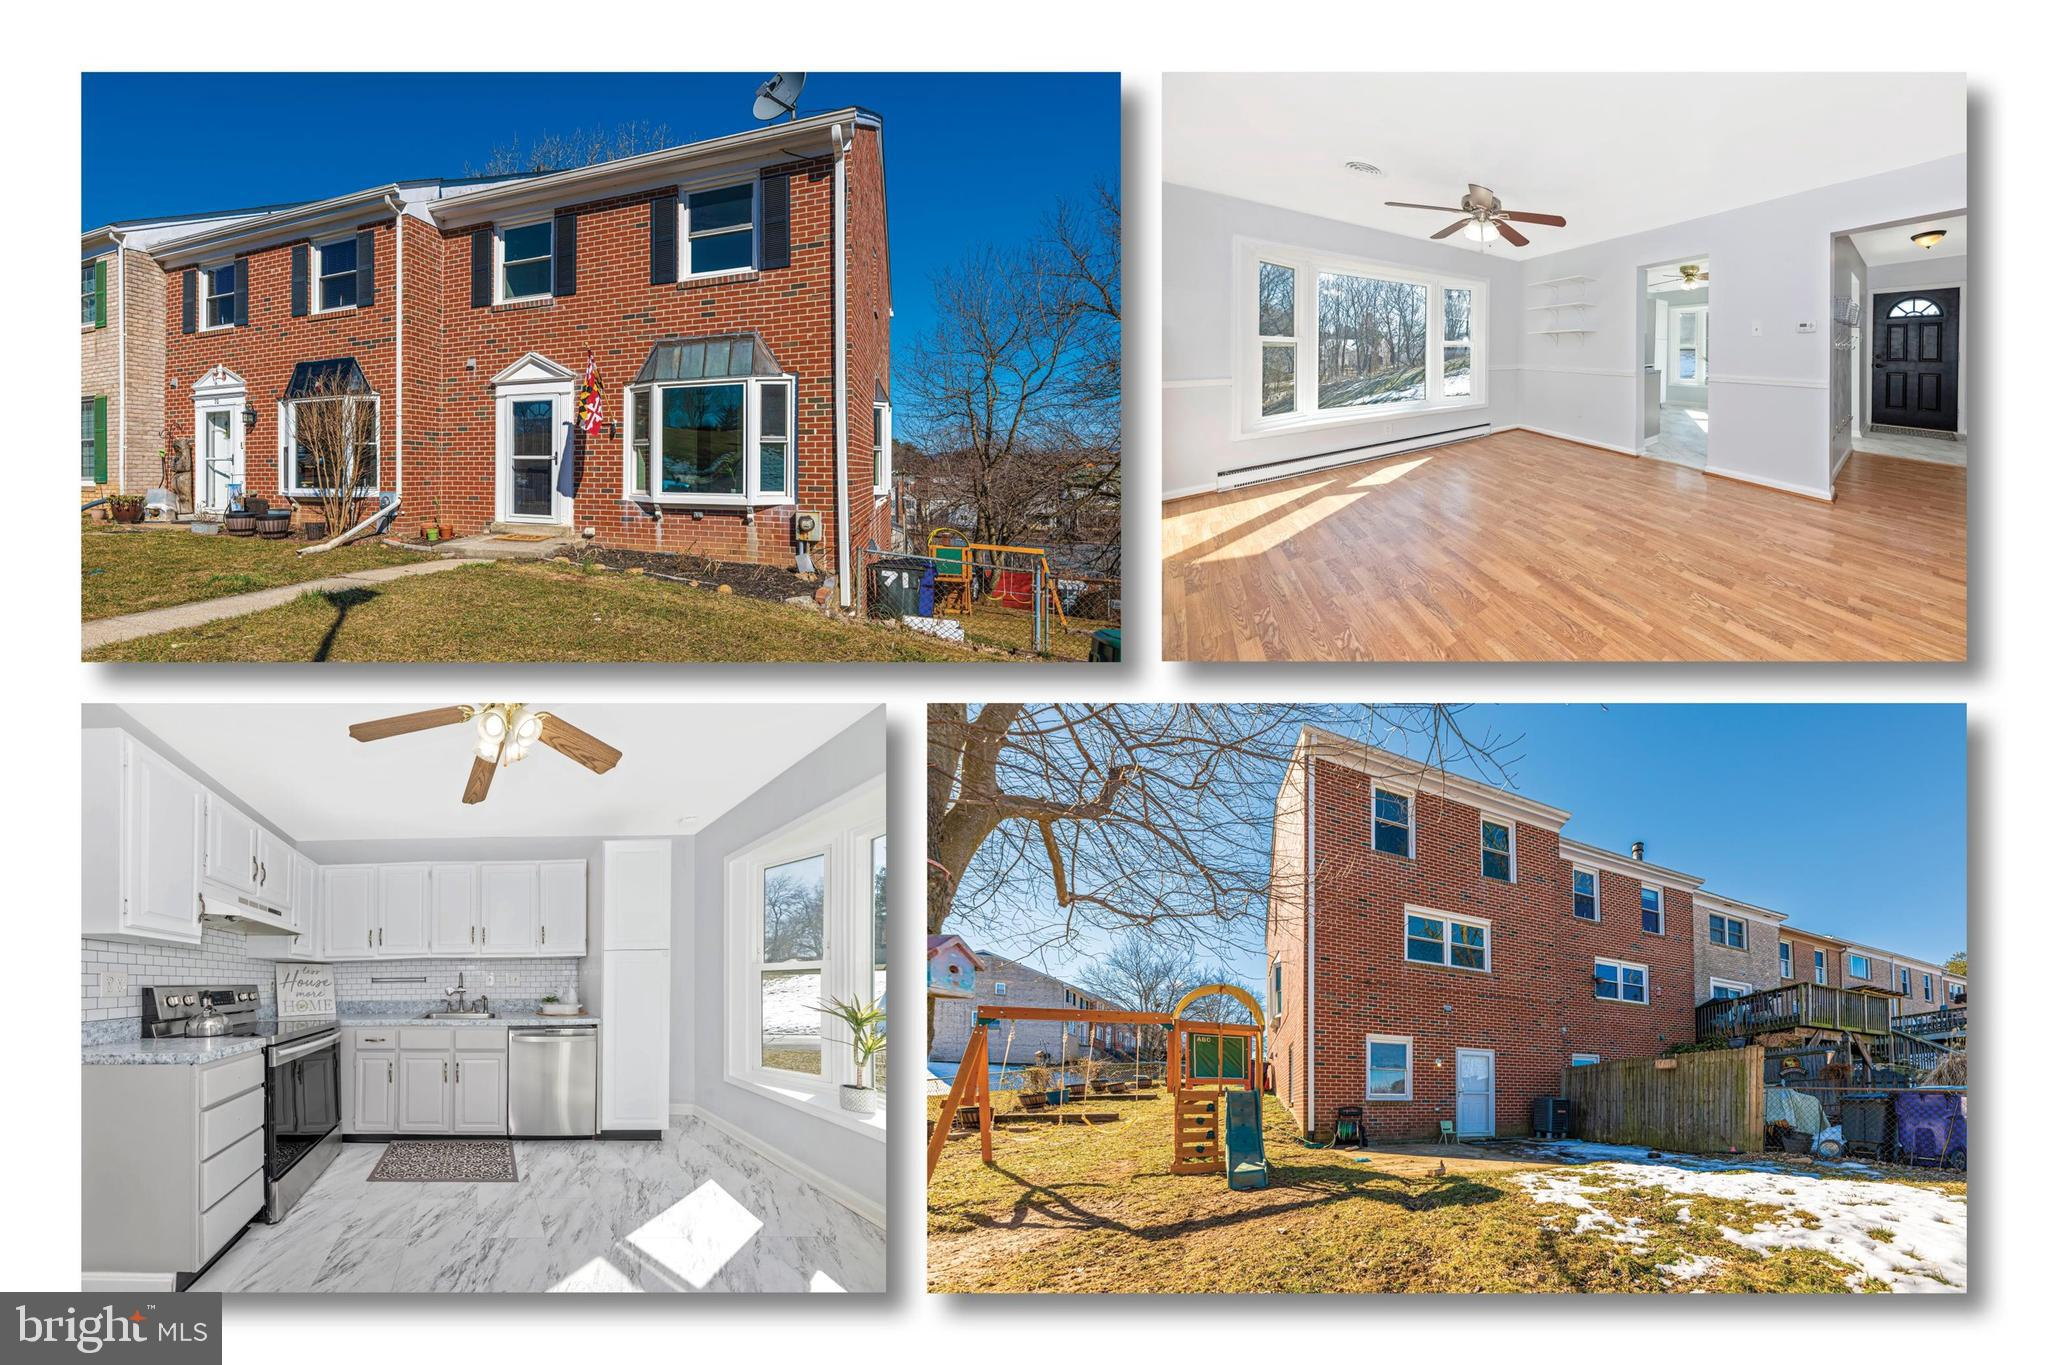 Charming - ALL BRICK - END UNIT - townhome, updated and ready for your personal touches.   Fresh paint with updated flooring throughout.  New roof ('19), Exterior doors ('18), HVAC ('14), Vinyl windows ('15), Water heater ('15), Fridge & Freezer ('15), Dishwasher ('19) and Stove ('20).  Fenced rear with swing set.   Oversized rear and side yards.  Sought after Middletown Schools.  In the heart of the town.  Walking distance to everything....